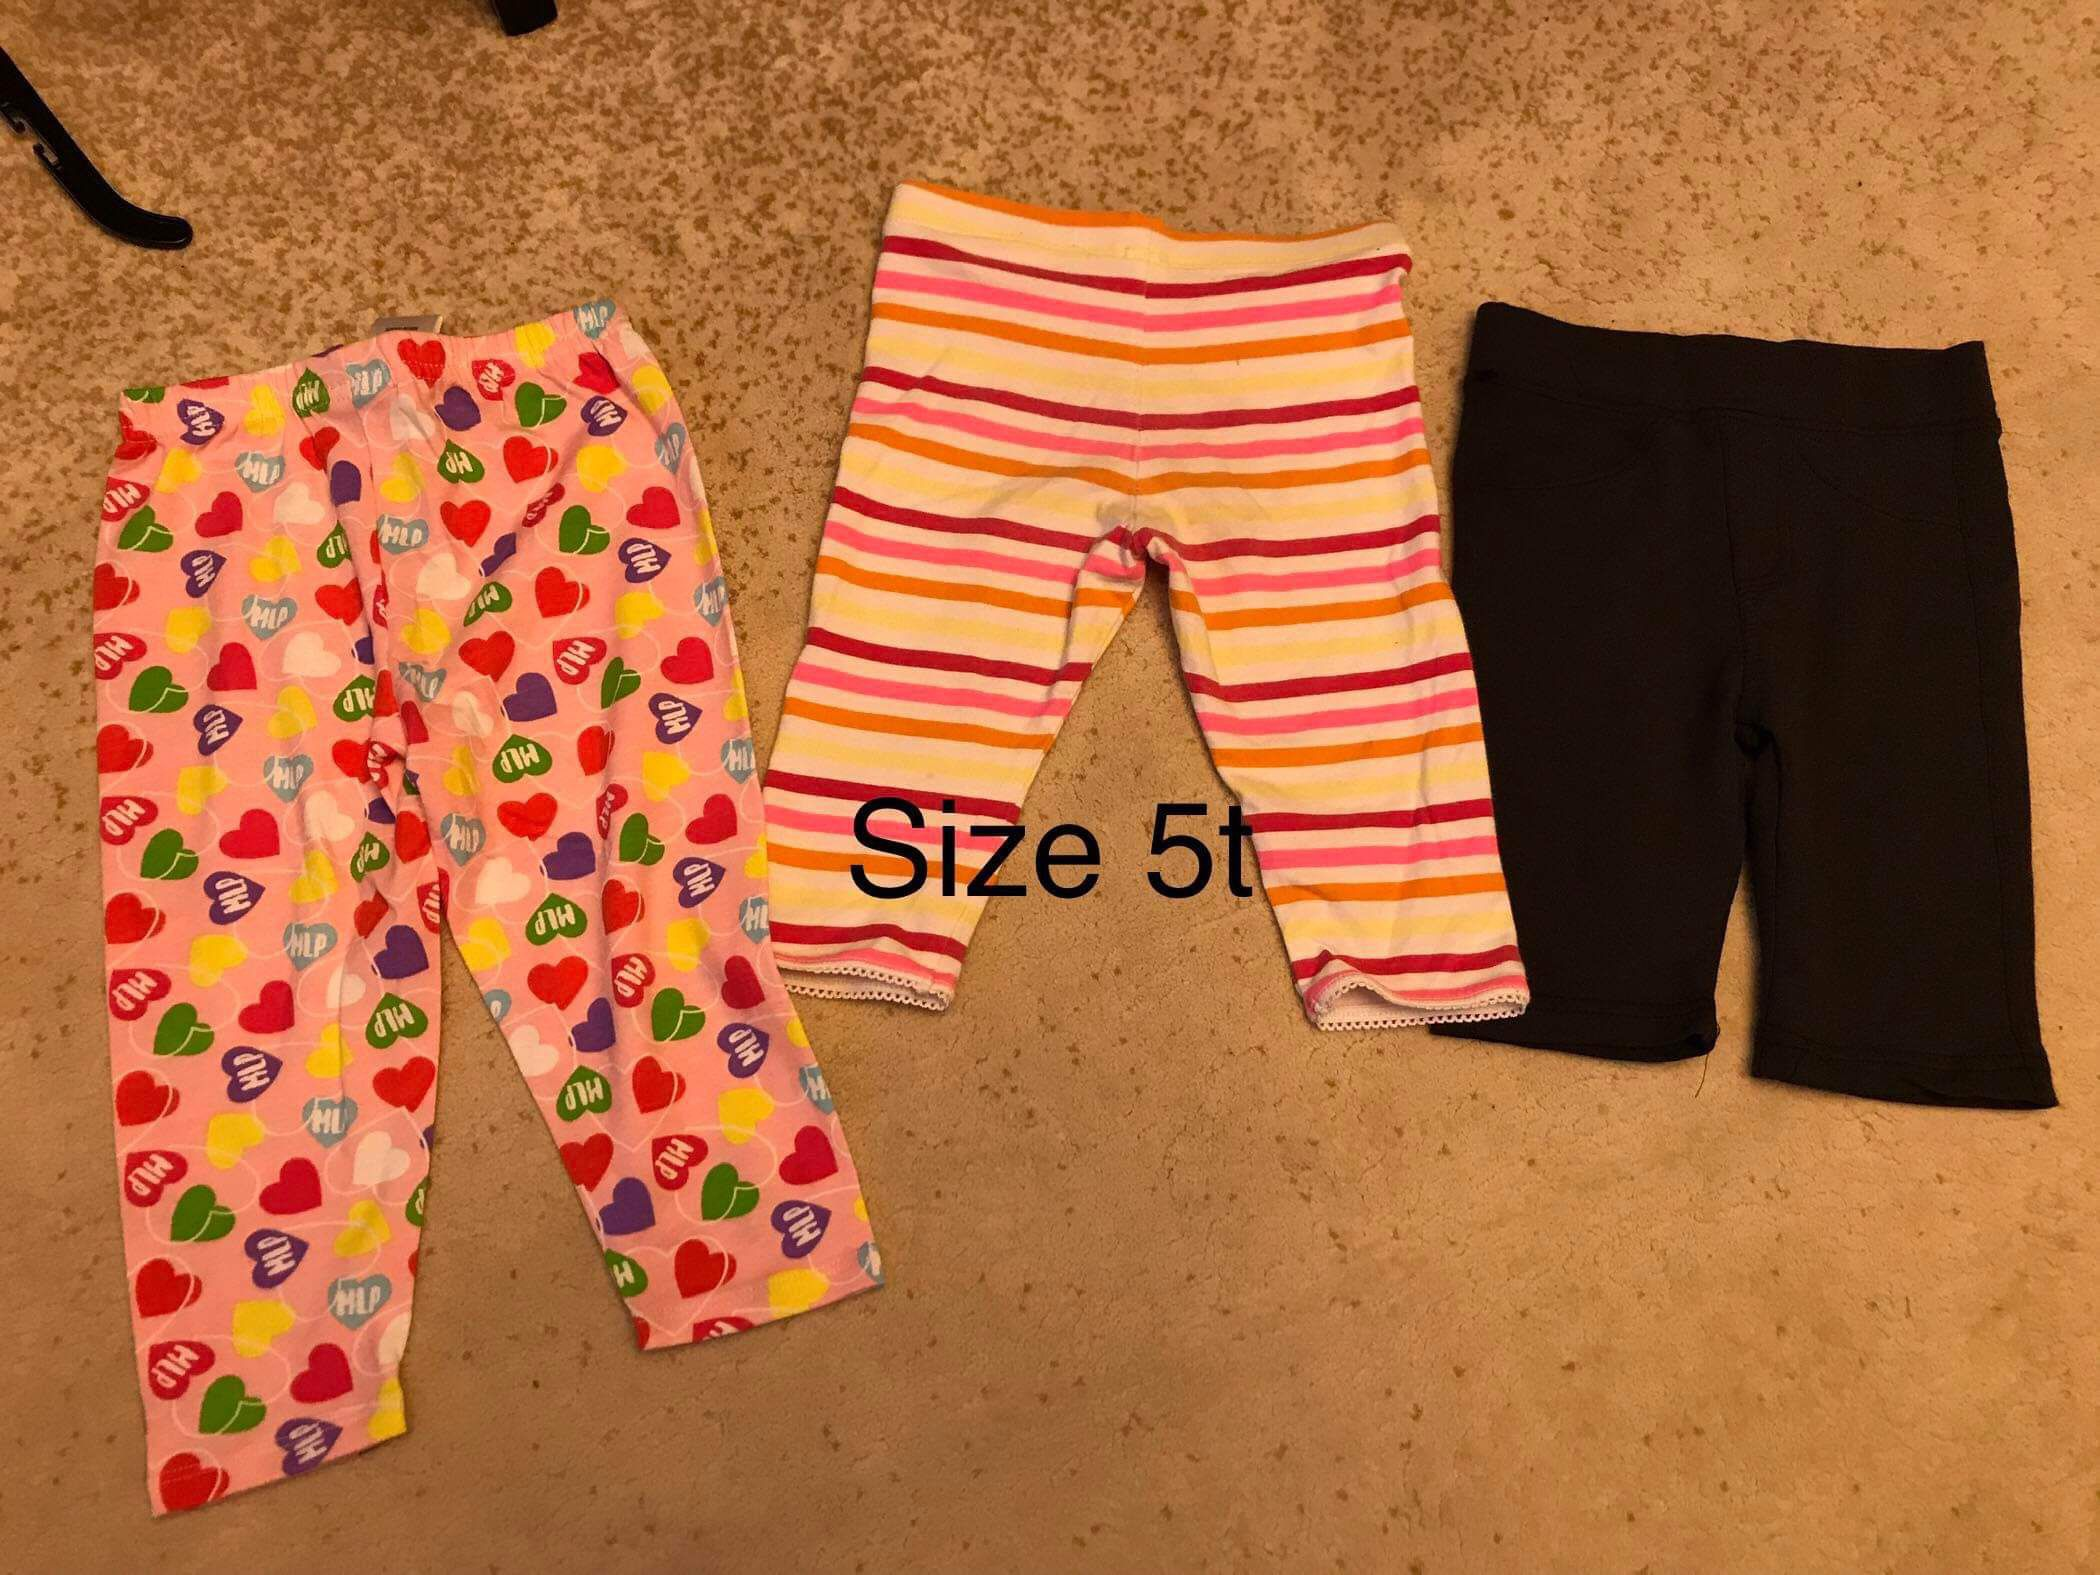 3pc shorts size 5t girl